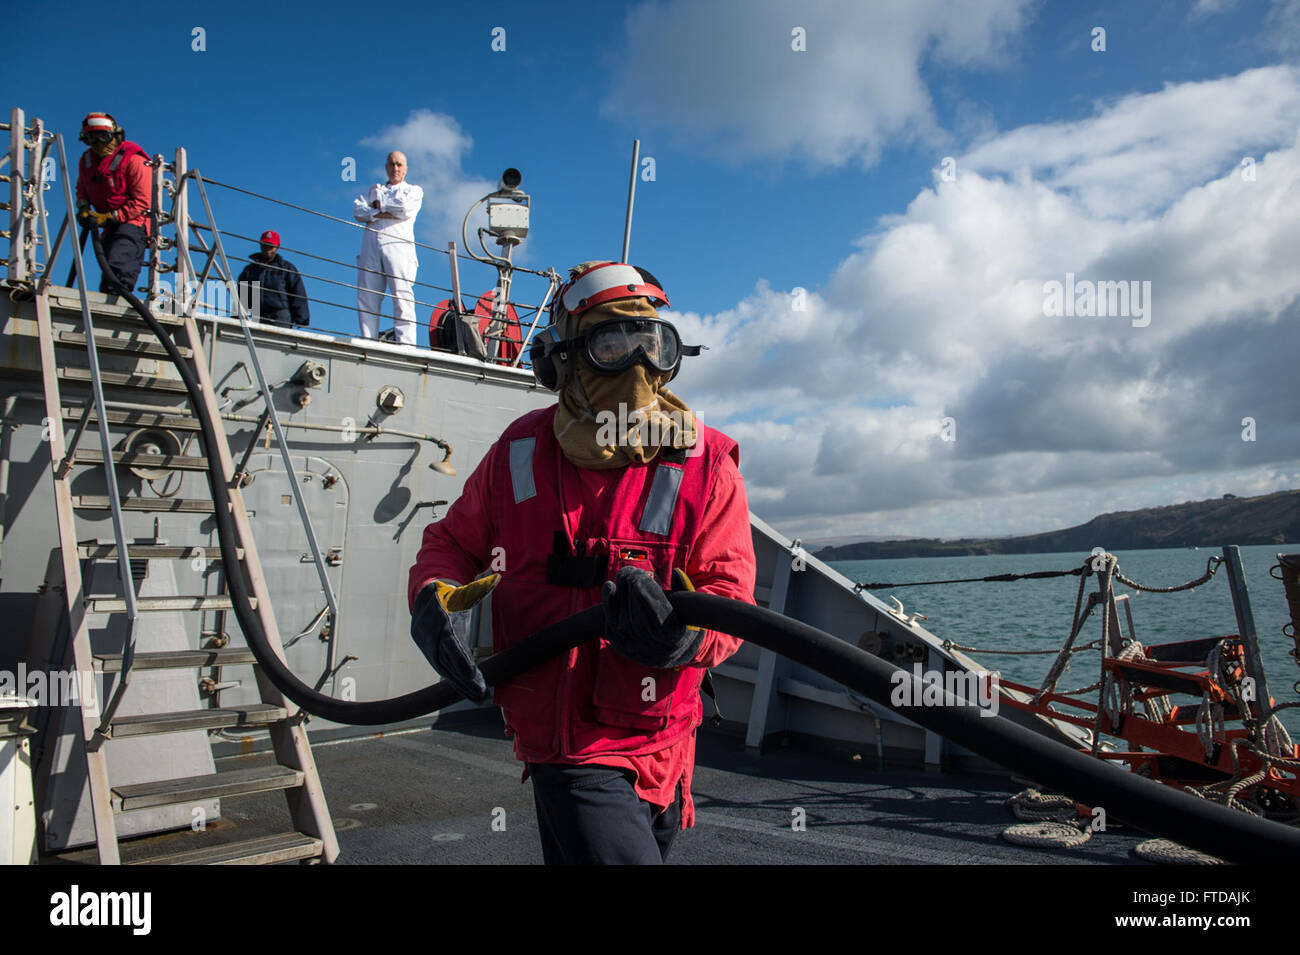 150325-N-JN664-029 PLYMOUTH, England (March 25, 2015) Sailors aboard USS Donald Cook (DDG 75) participate in a simulated Stock Photo